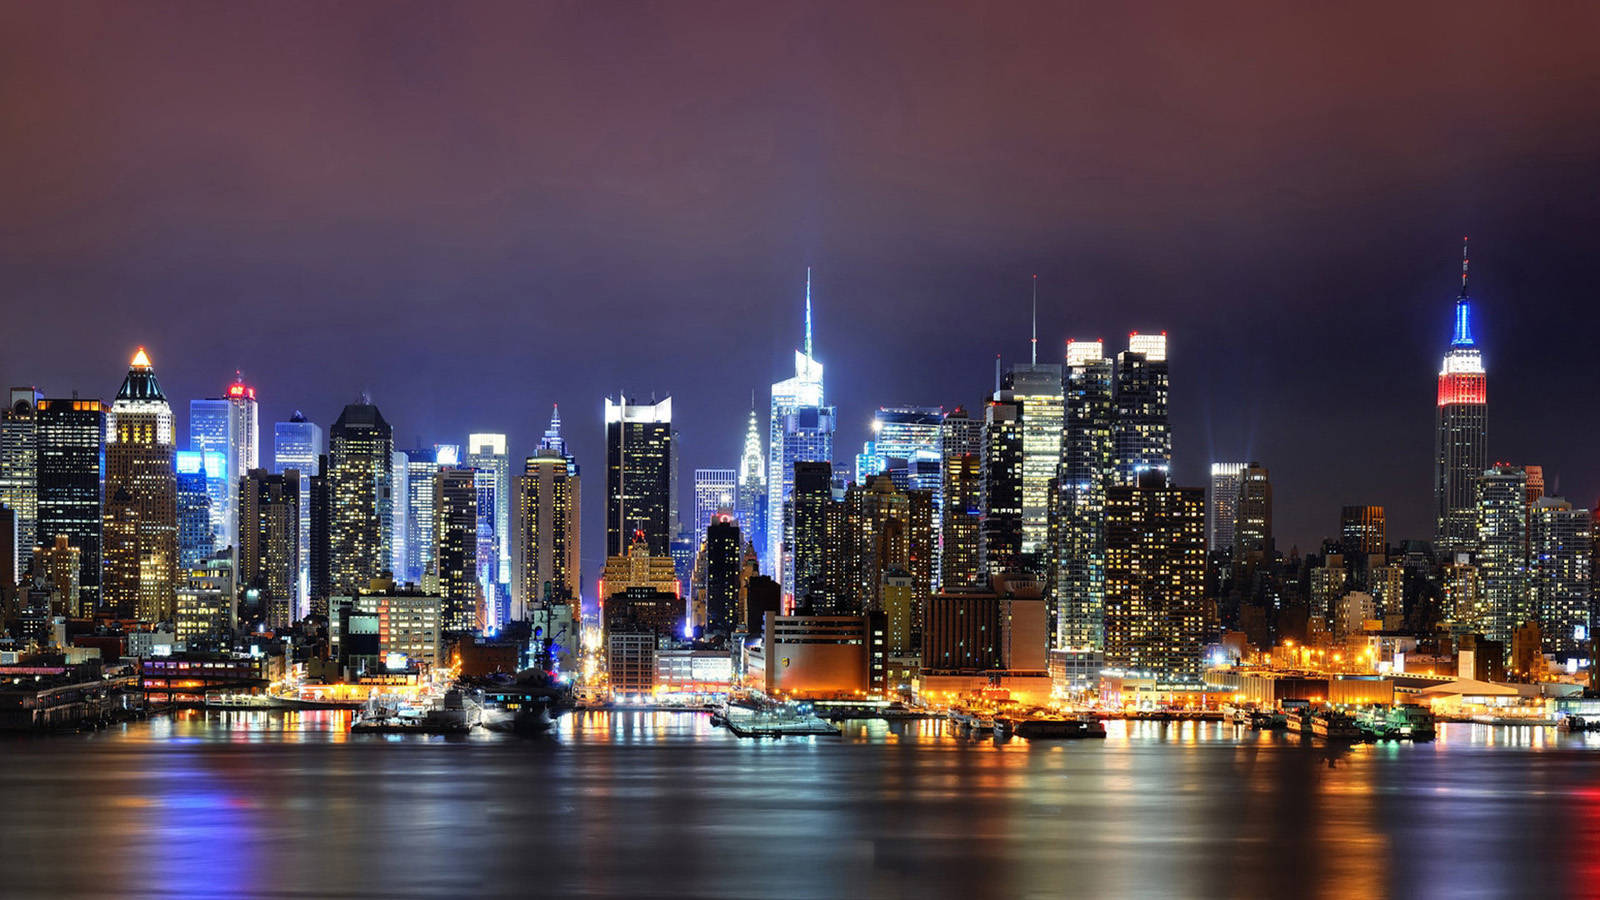 New York city light building wallpaper city wallpaper 1600x900